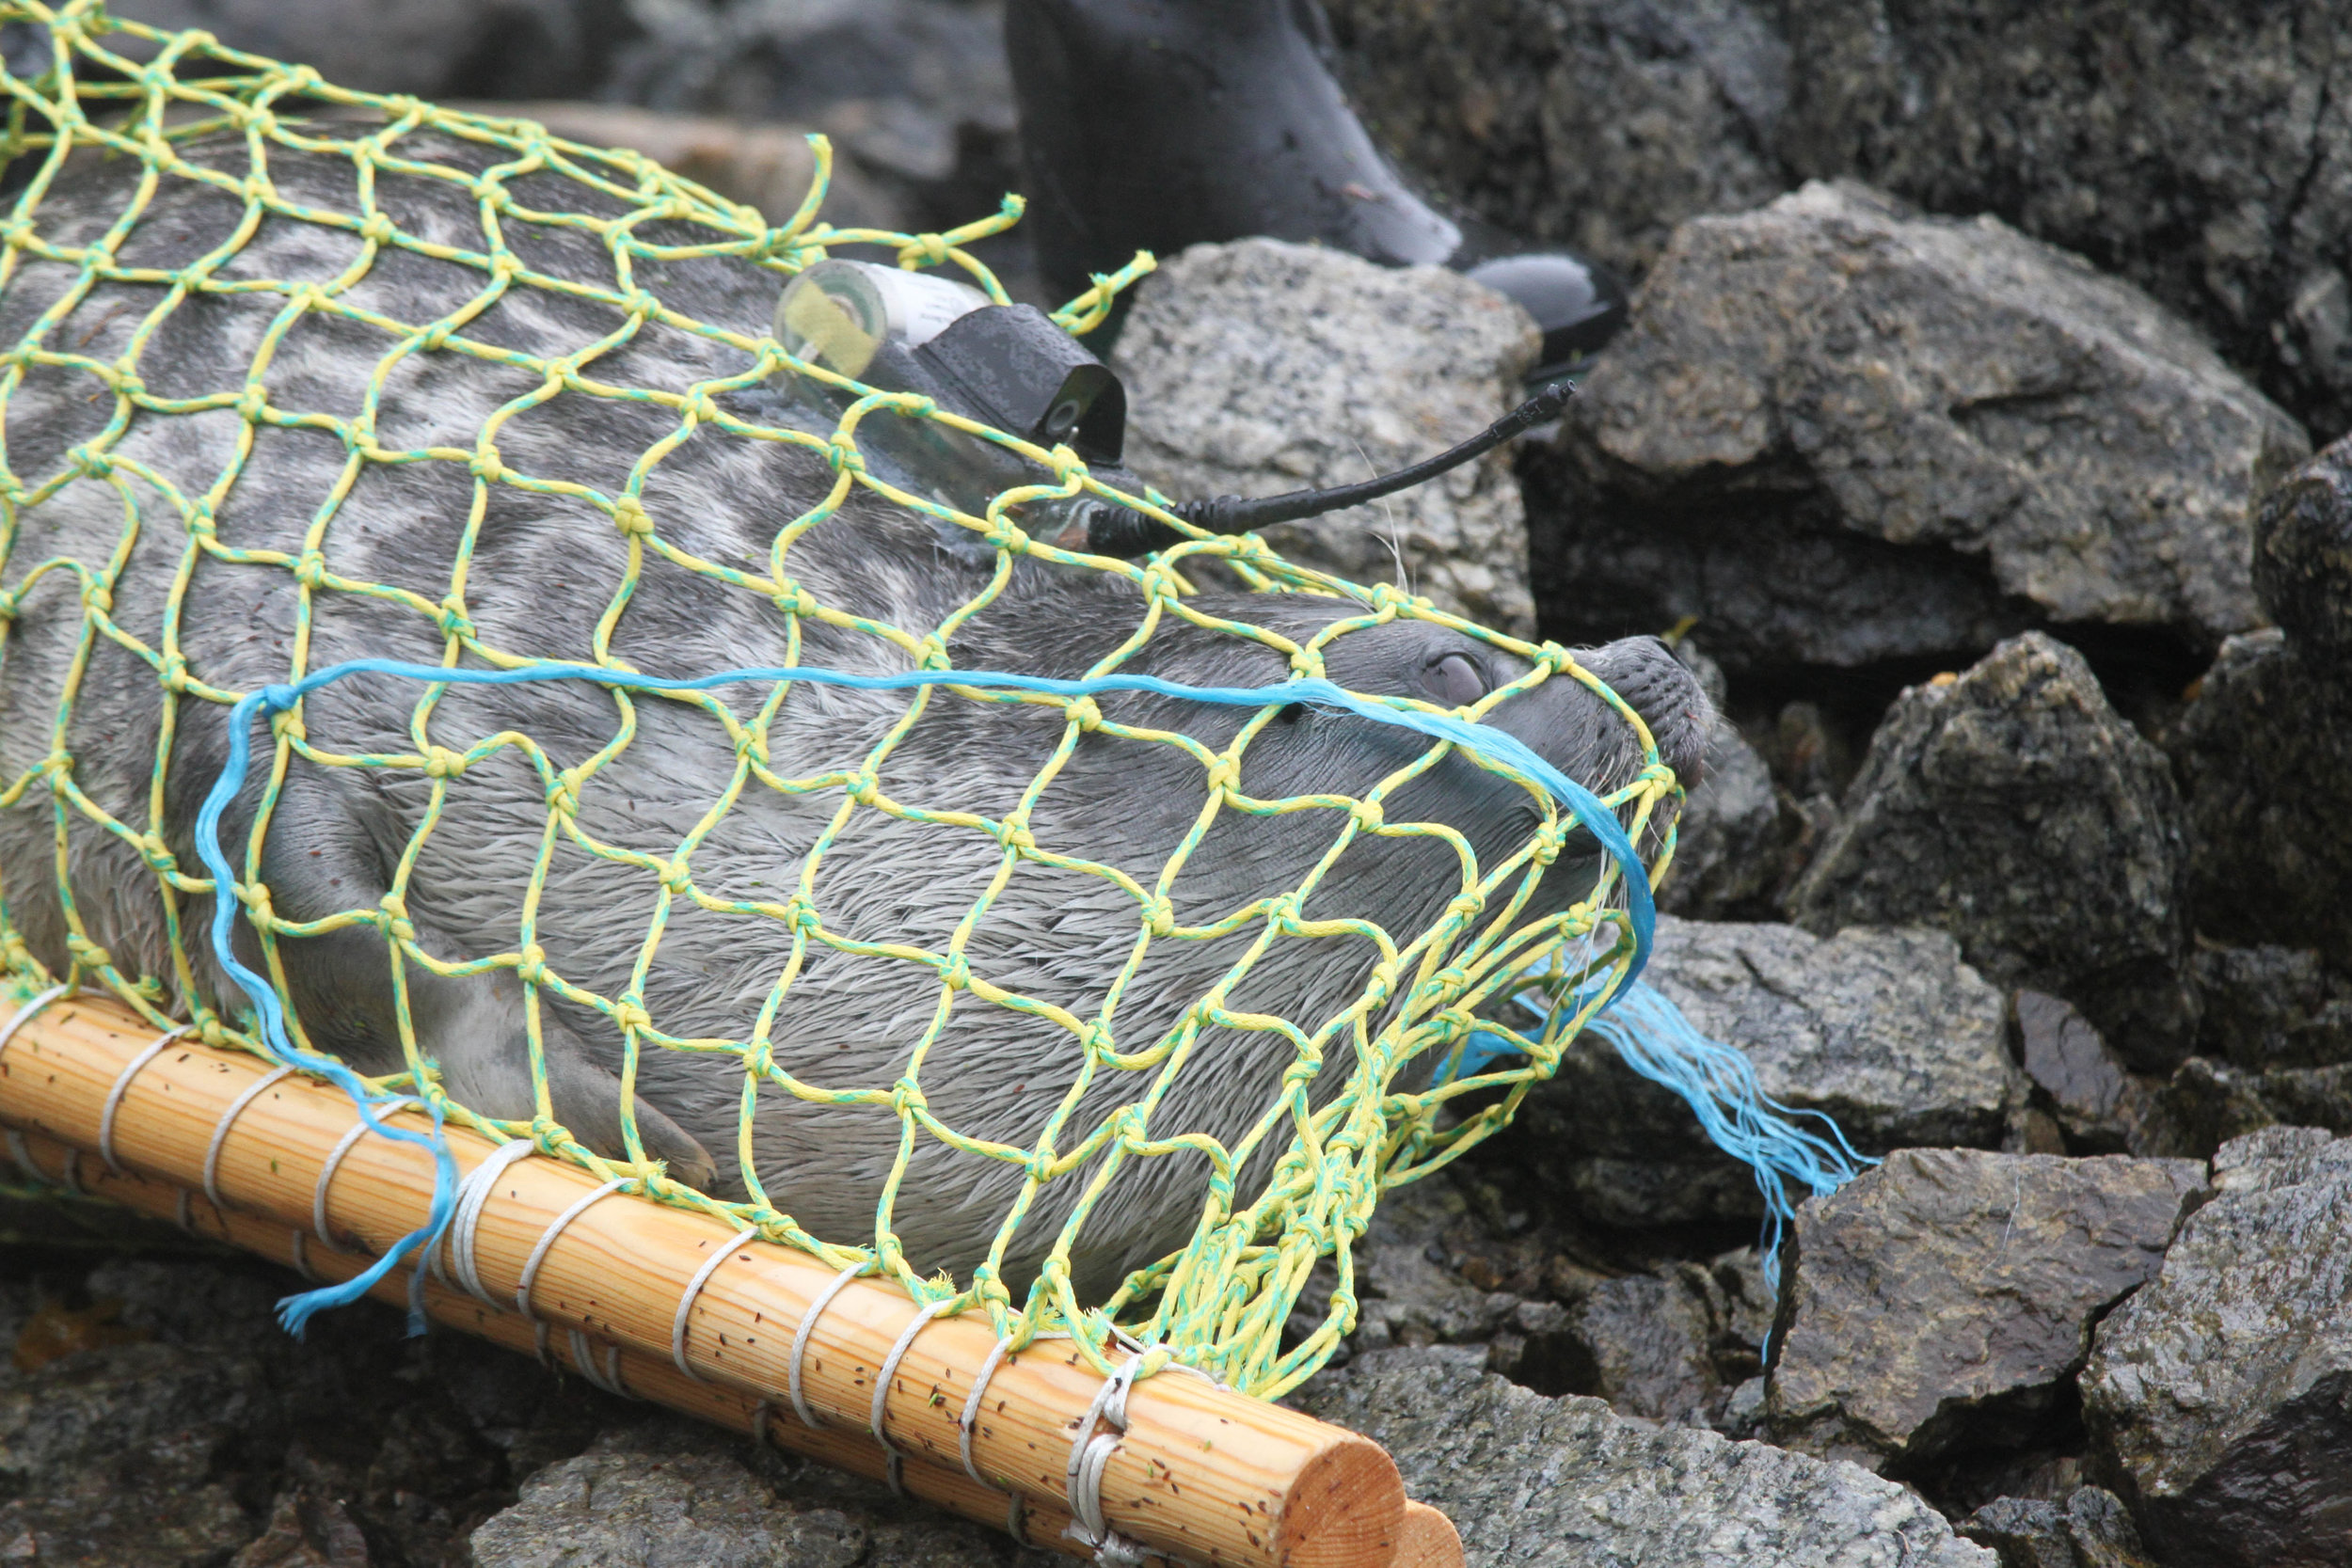 After restraining the seal in a hammock, researchers efficiently fix a tag with a sensor onto the back of the seal's neck with epoxy glue. The entire process takes about 15 minutes.